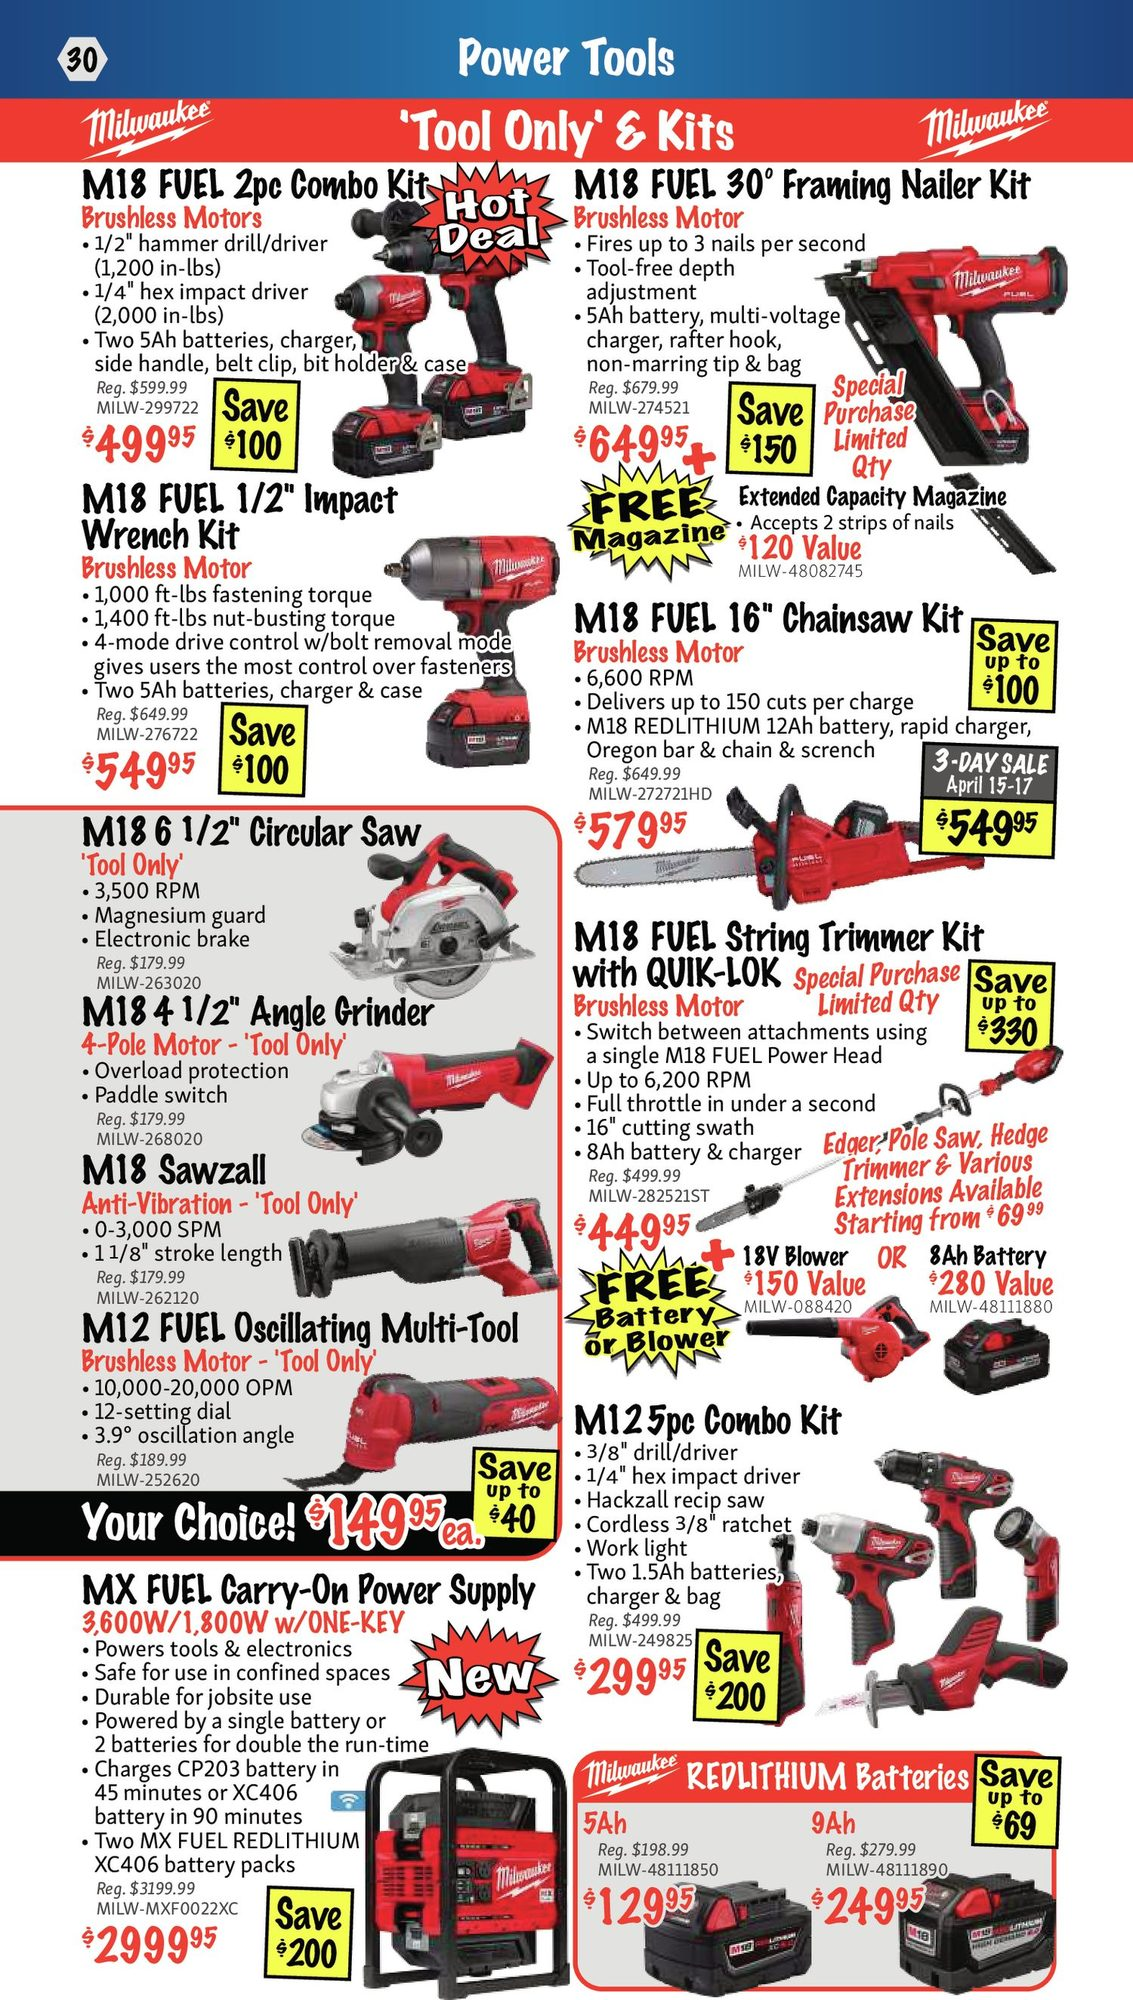 KMS Tools - Hand Tools, Air Tools & Compressor Sale - Page 30